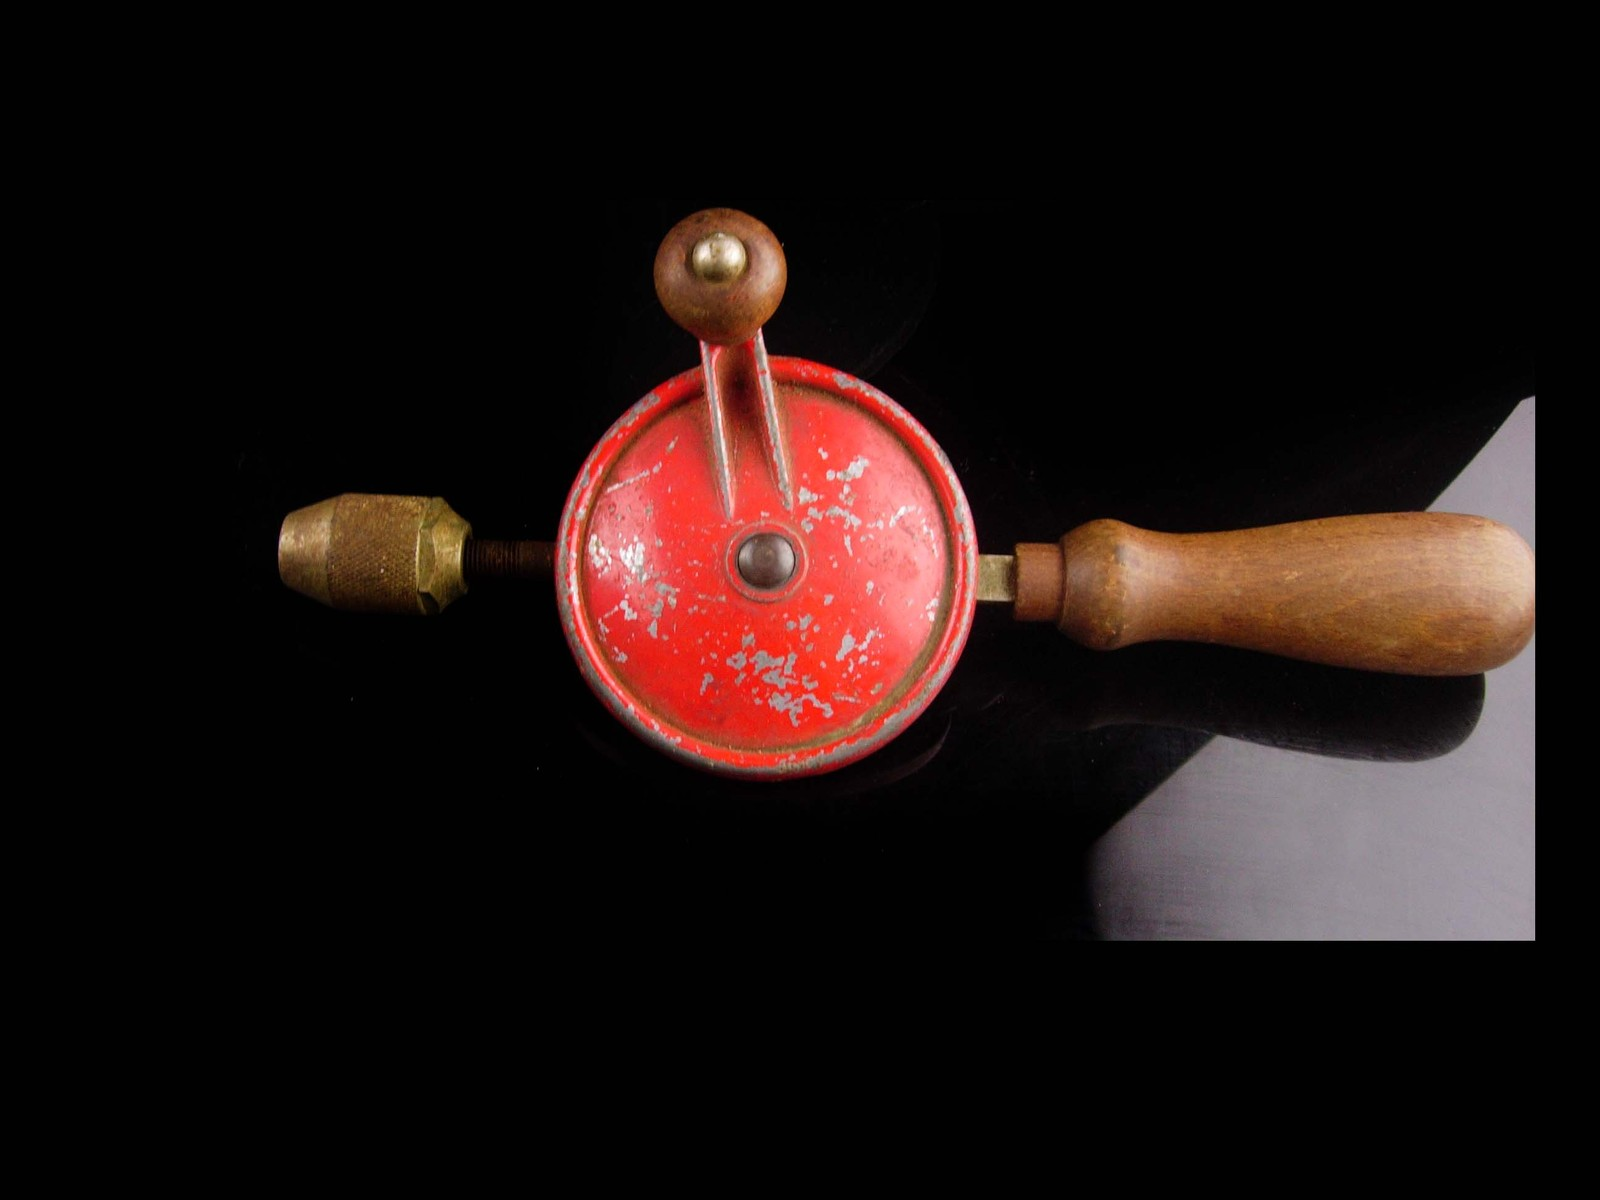 Vintage drill /  gift for him / Gear driven- hand tool - Red wood - woodworker g